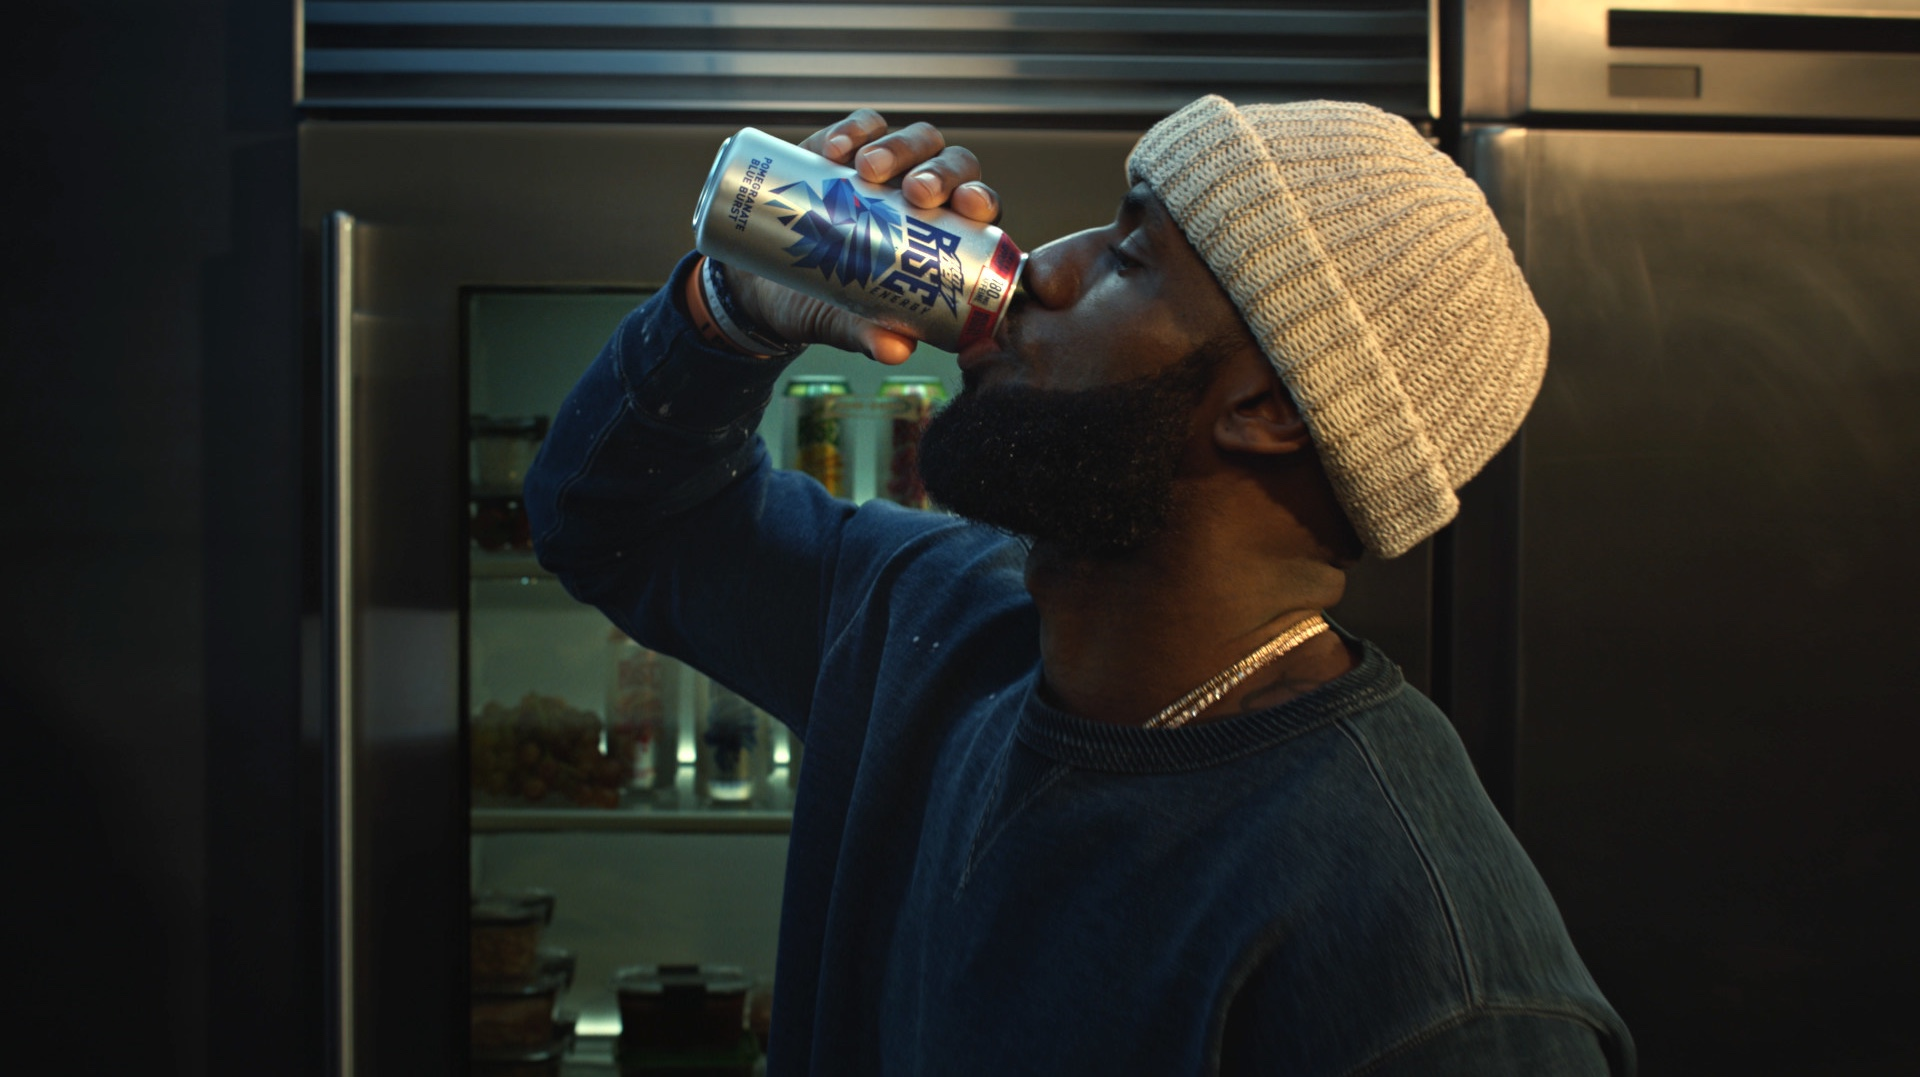 MTN DEW and LeBron James unveil first-ever ad campaign